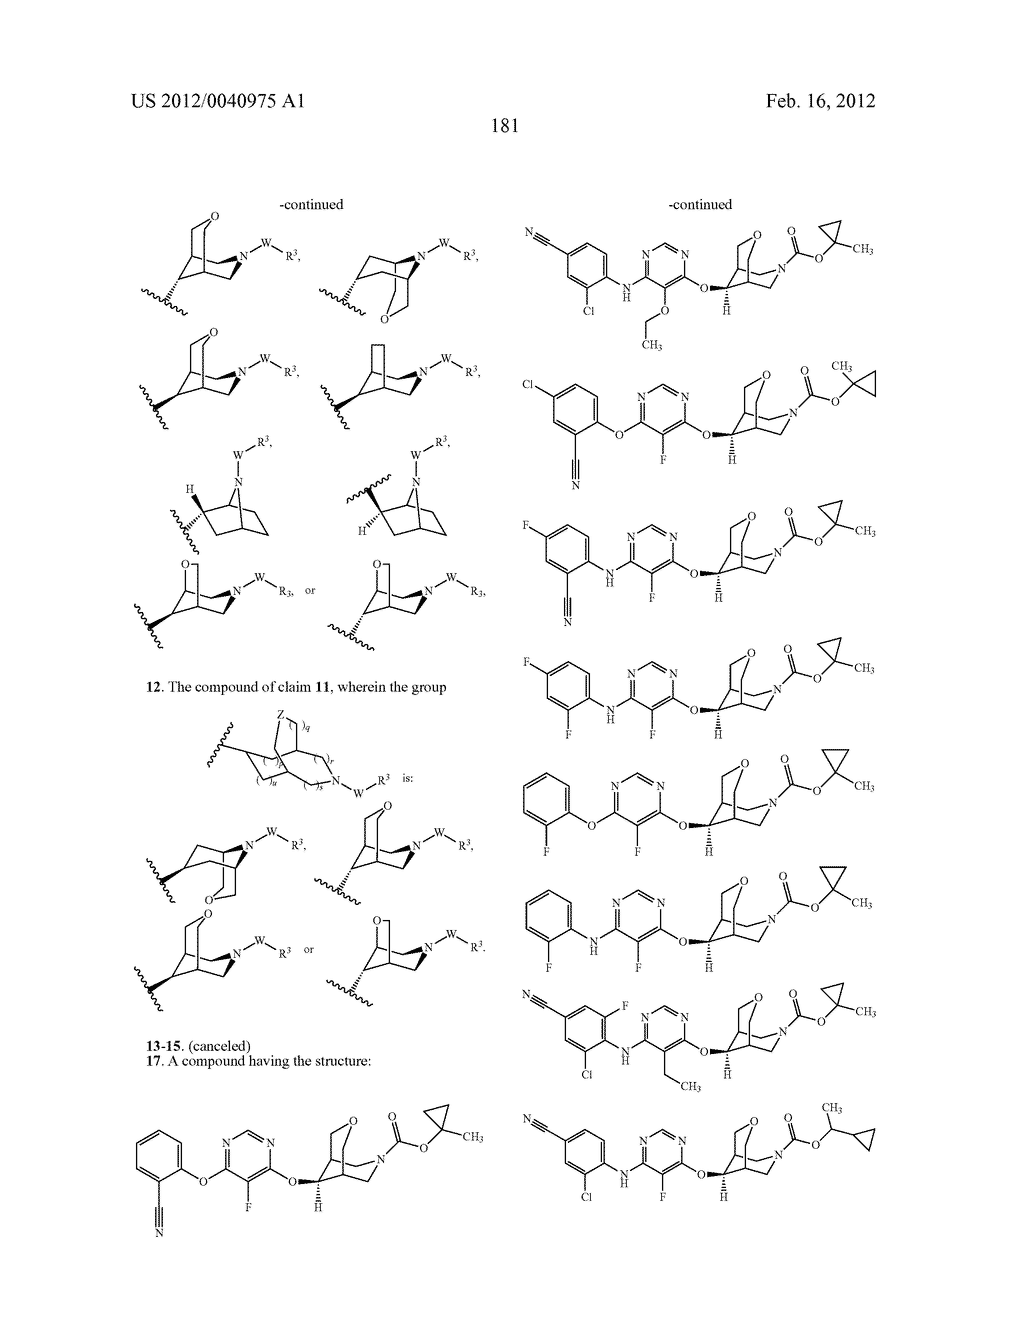 BRIDGED BICYCLIC HETEROCYCLE DERIVATIVES AND METHODS OF USE THEREOF - diagram, schematic, and image 182